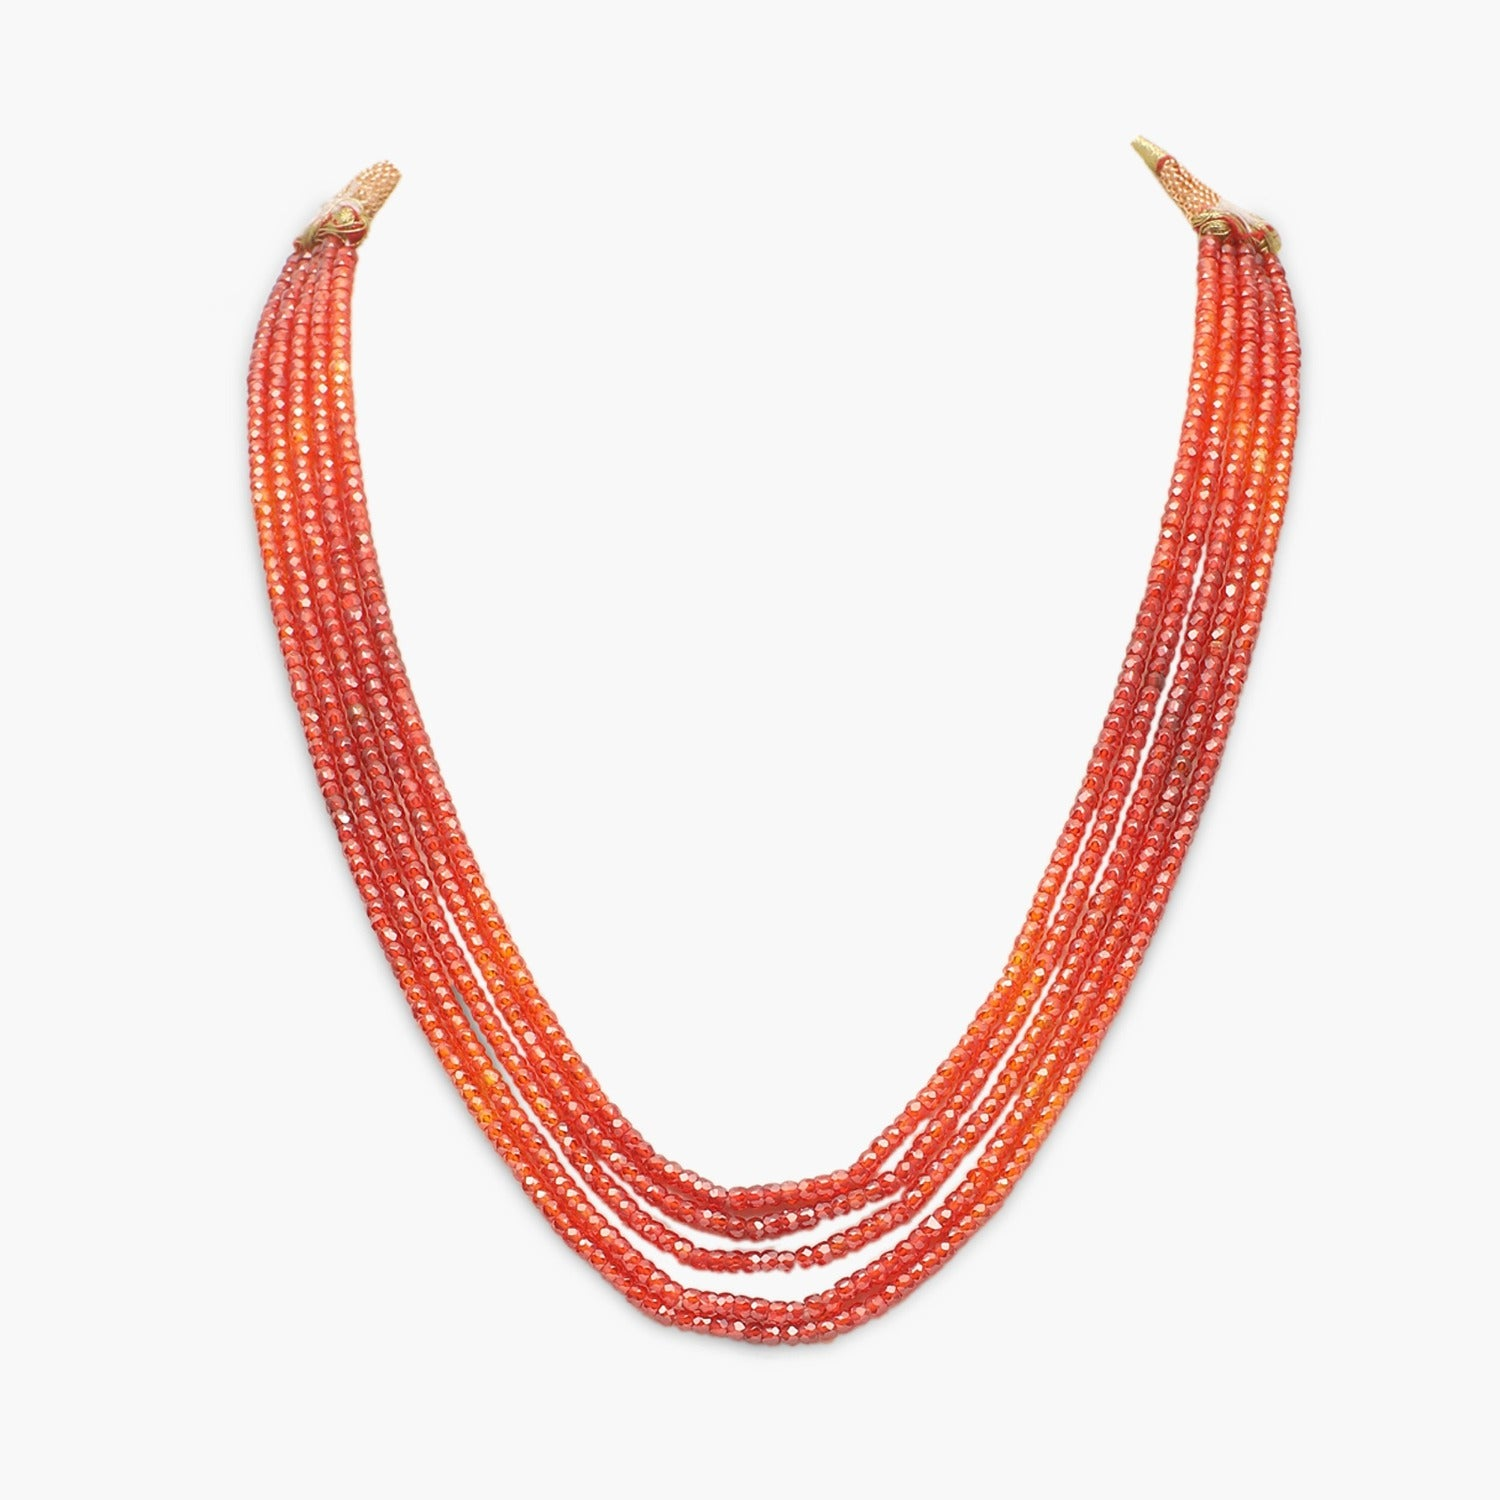 Orange Shaded Cubic Zirconia Faceted Beads Necklace